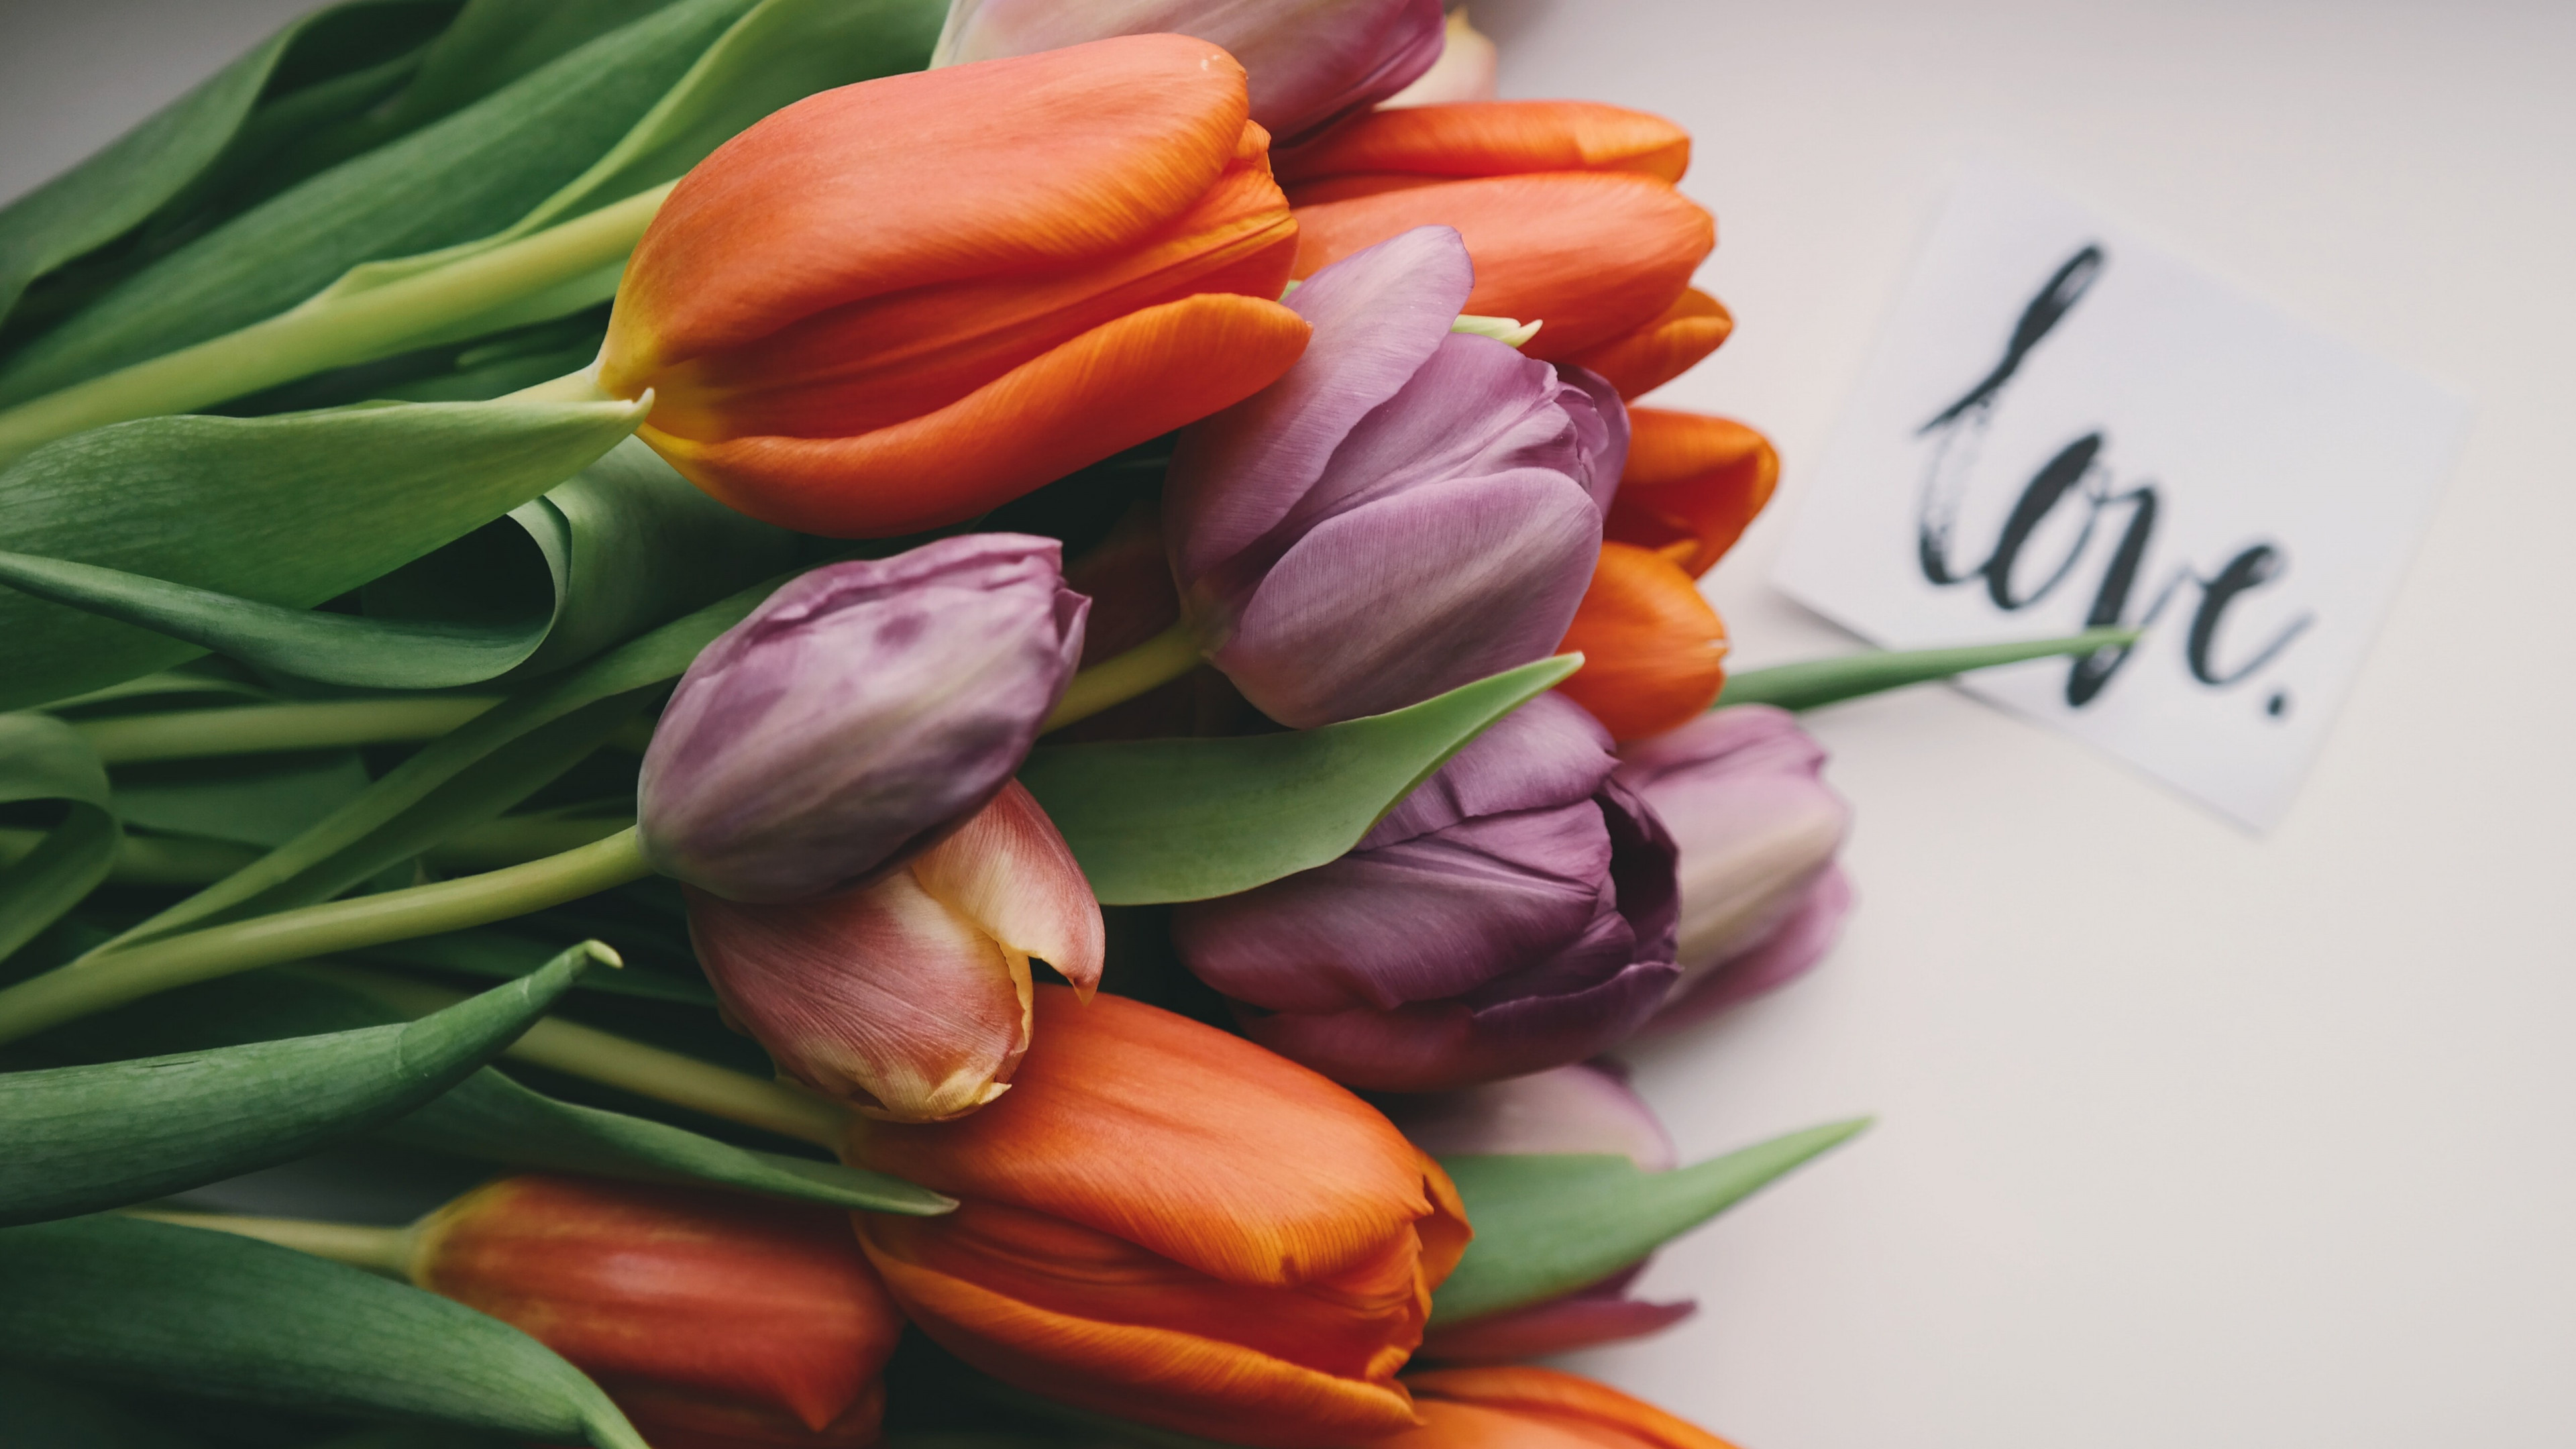 Tulips with love wallpaper 3840x2160